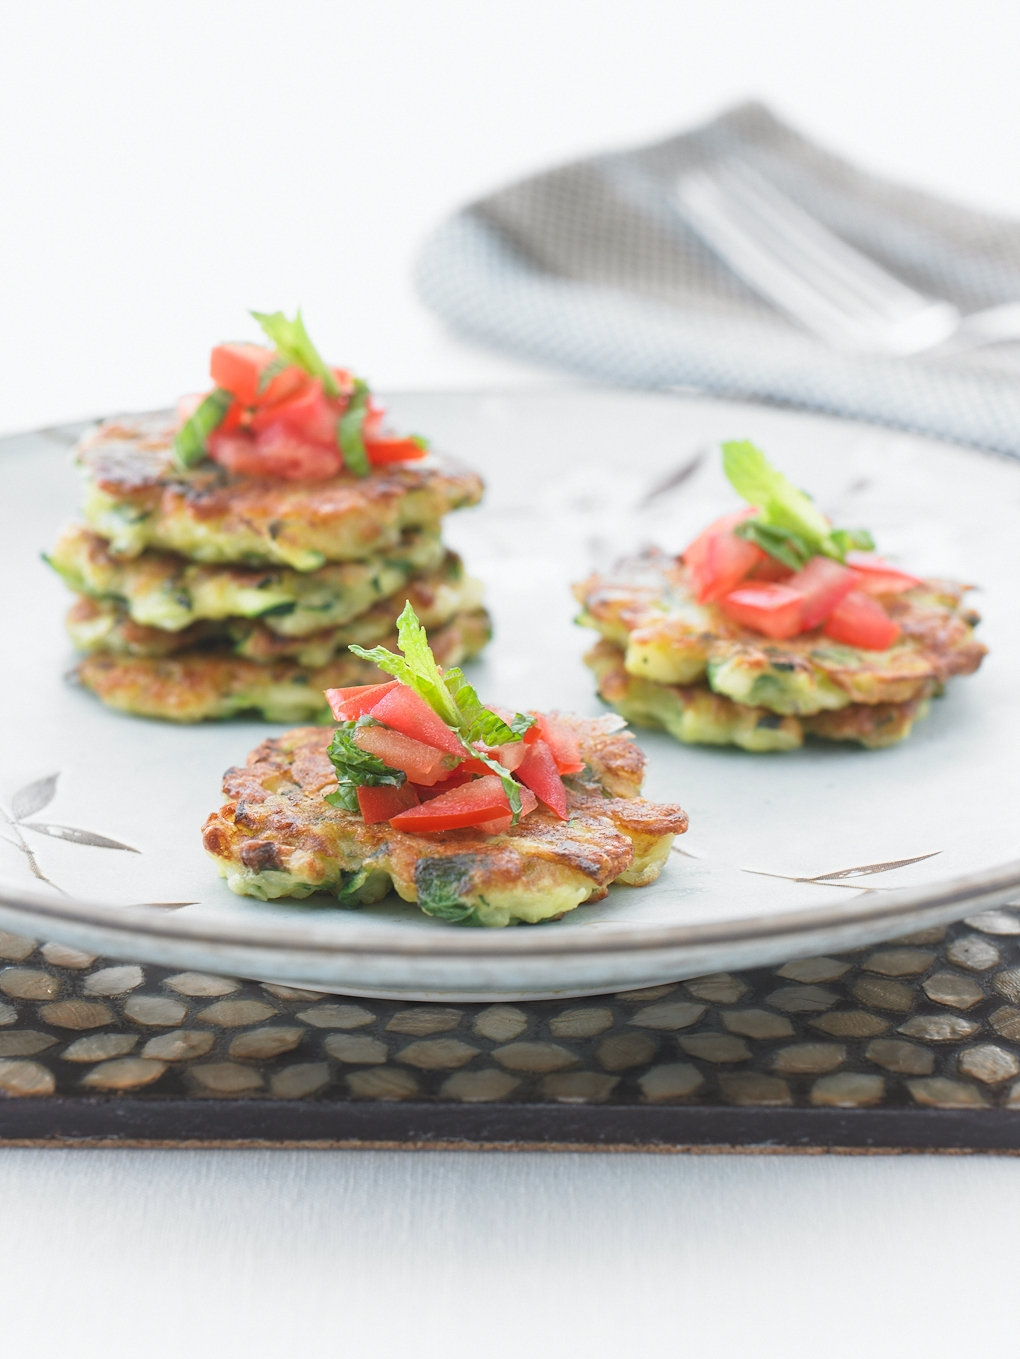 Haloumi Fritters with Tomato and Mint